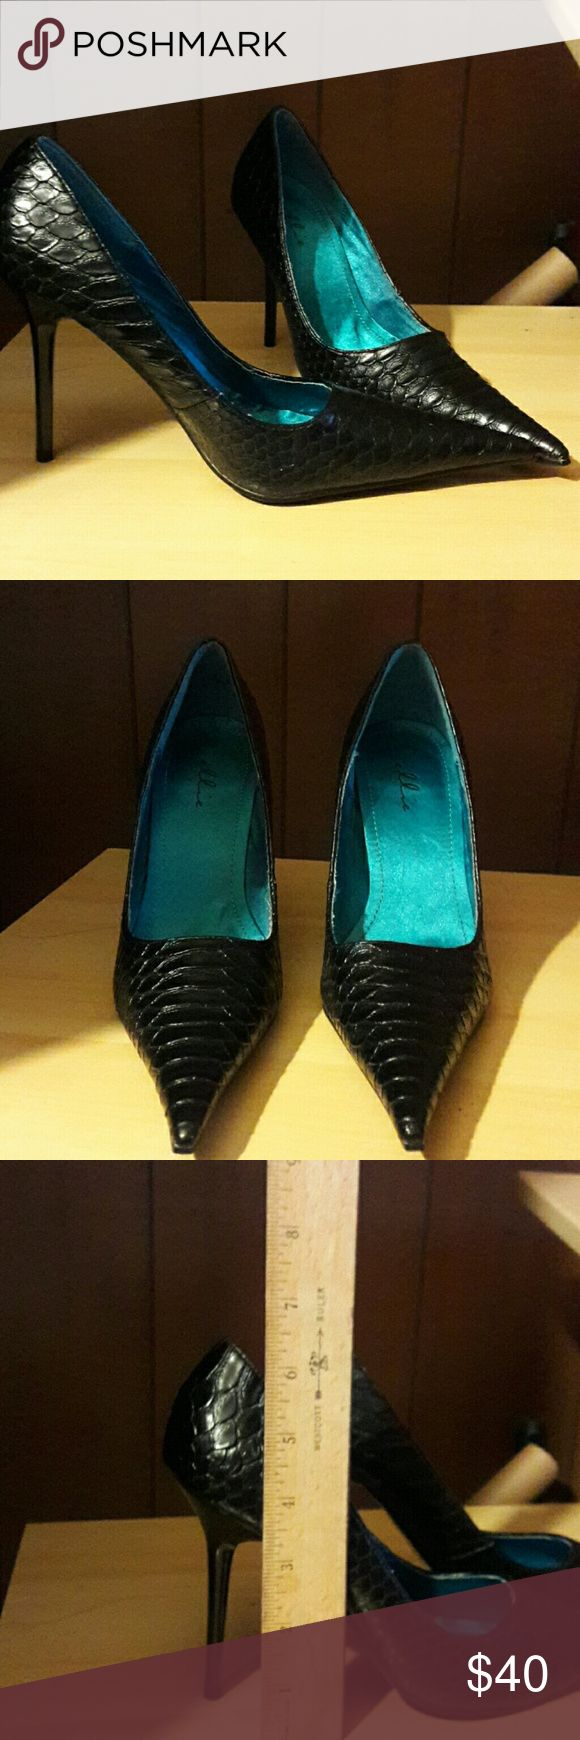 Shoes Black pointy toe high heal shoes. Man made materials. Size 7. Brand new in box never worn. Snake skin look with teal interior. Elle Shoes Heels